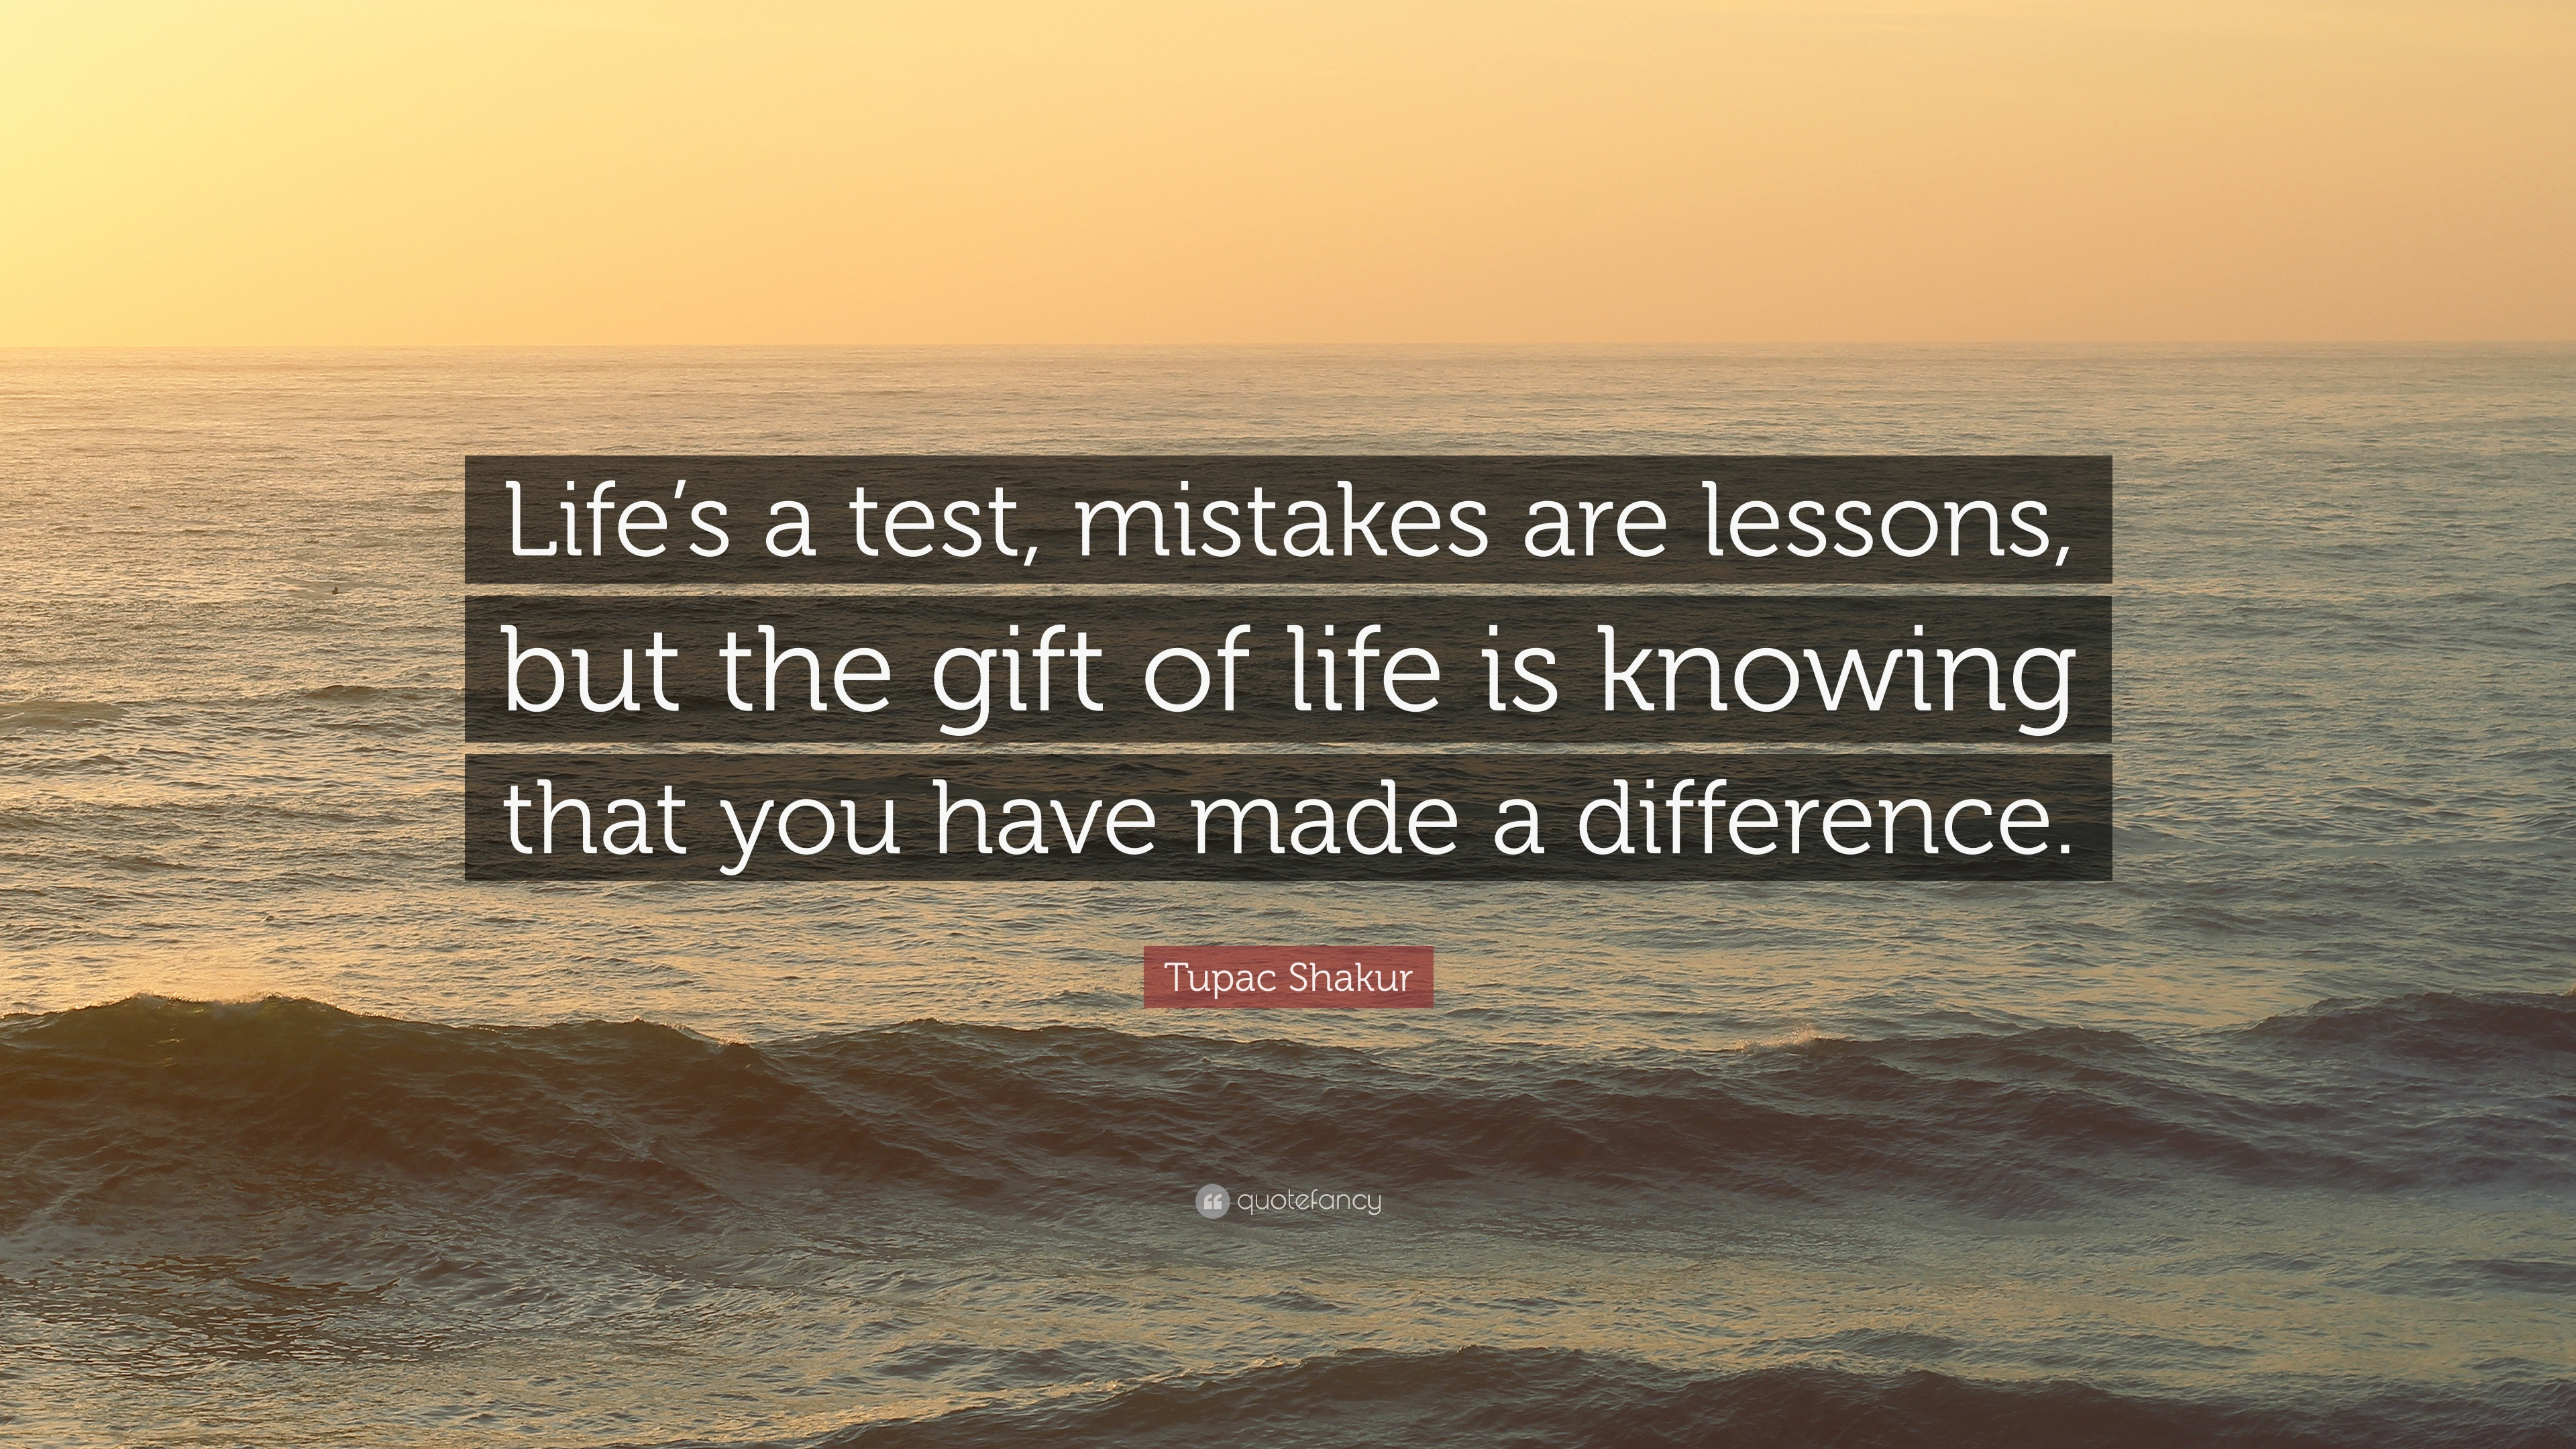 Tupac Shakur Quote Lifes A Test Mistakes Are Lessons But The